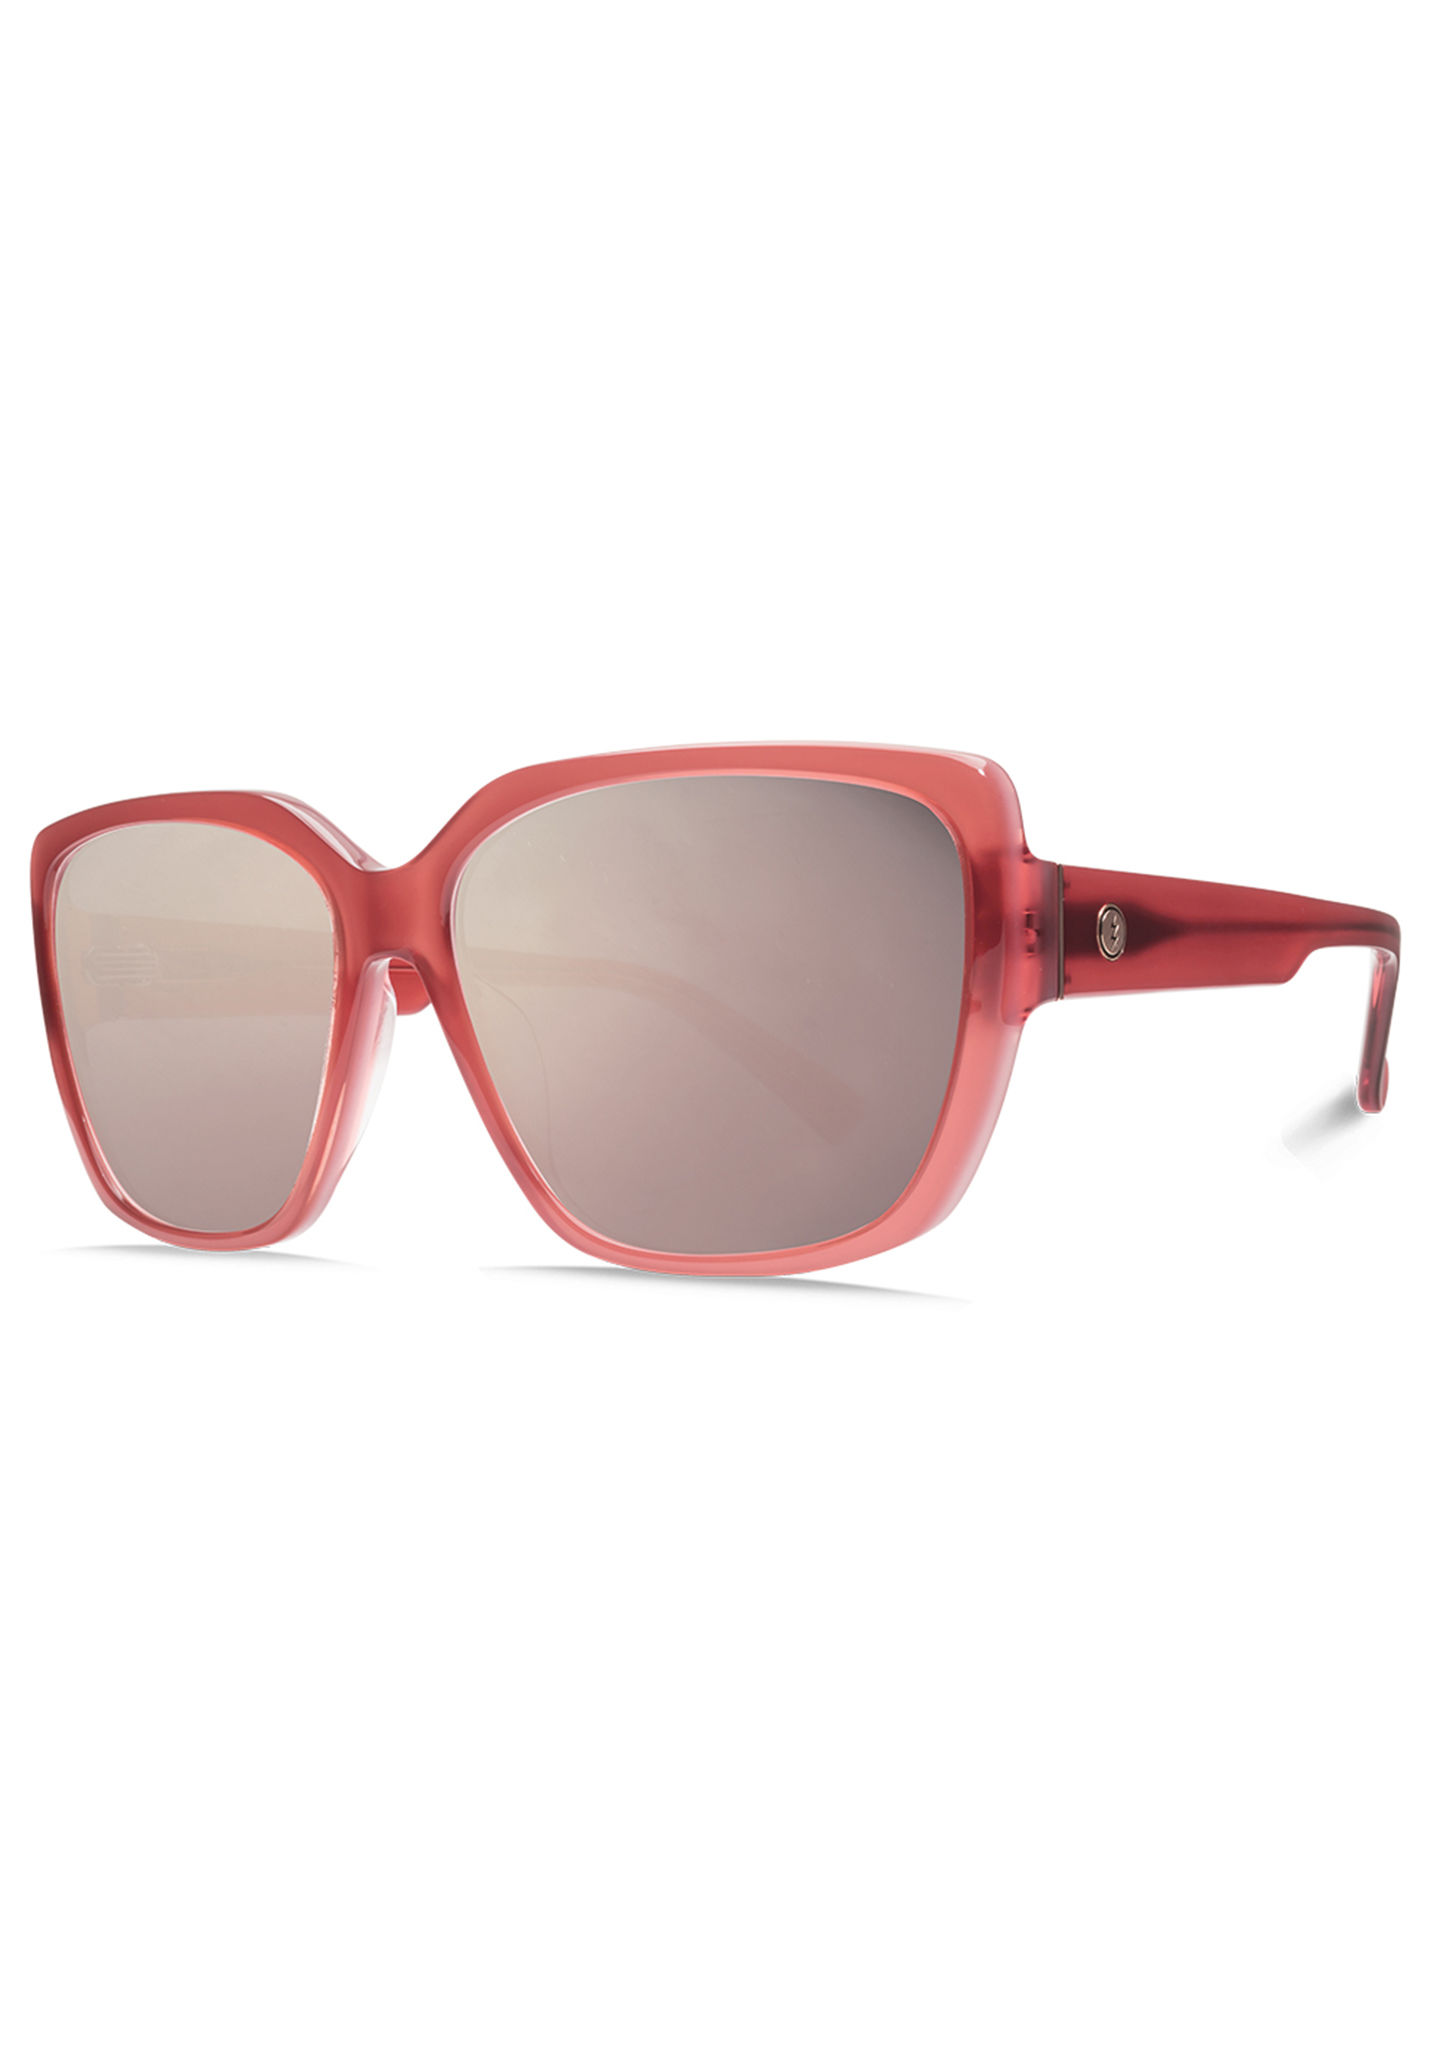 af1c522bec Electric Honey Bee - Sunglasses for Women - Red - Planet Sports